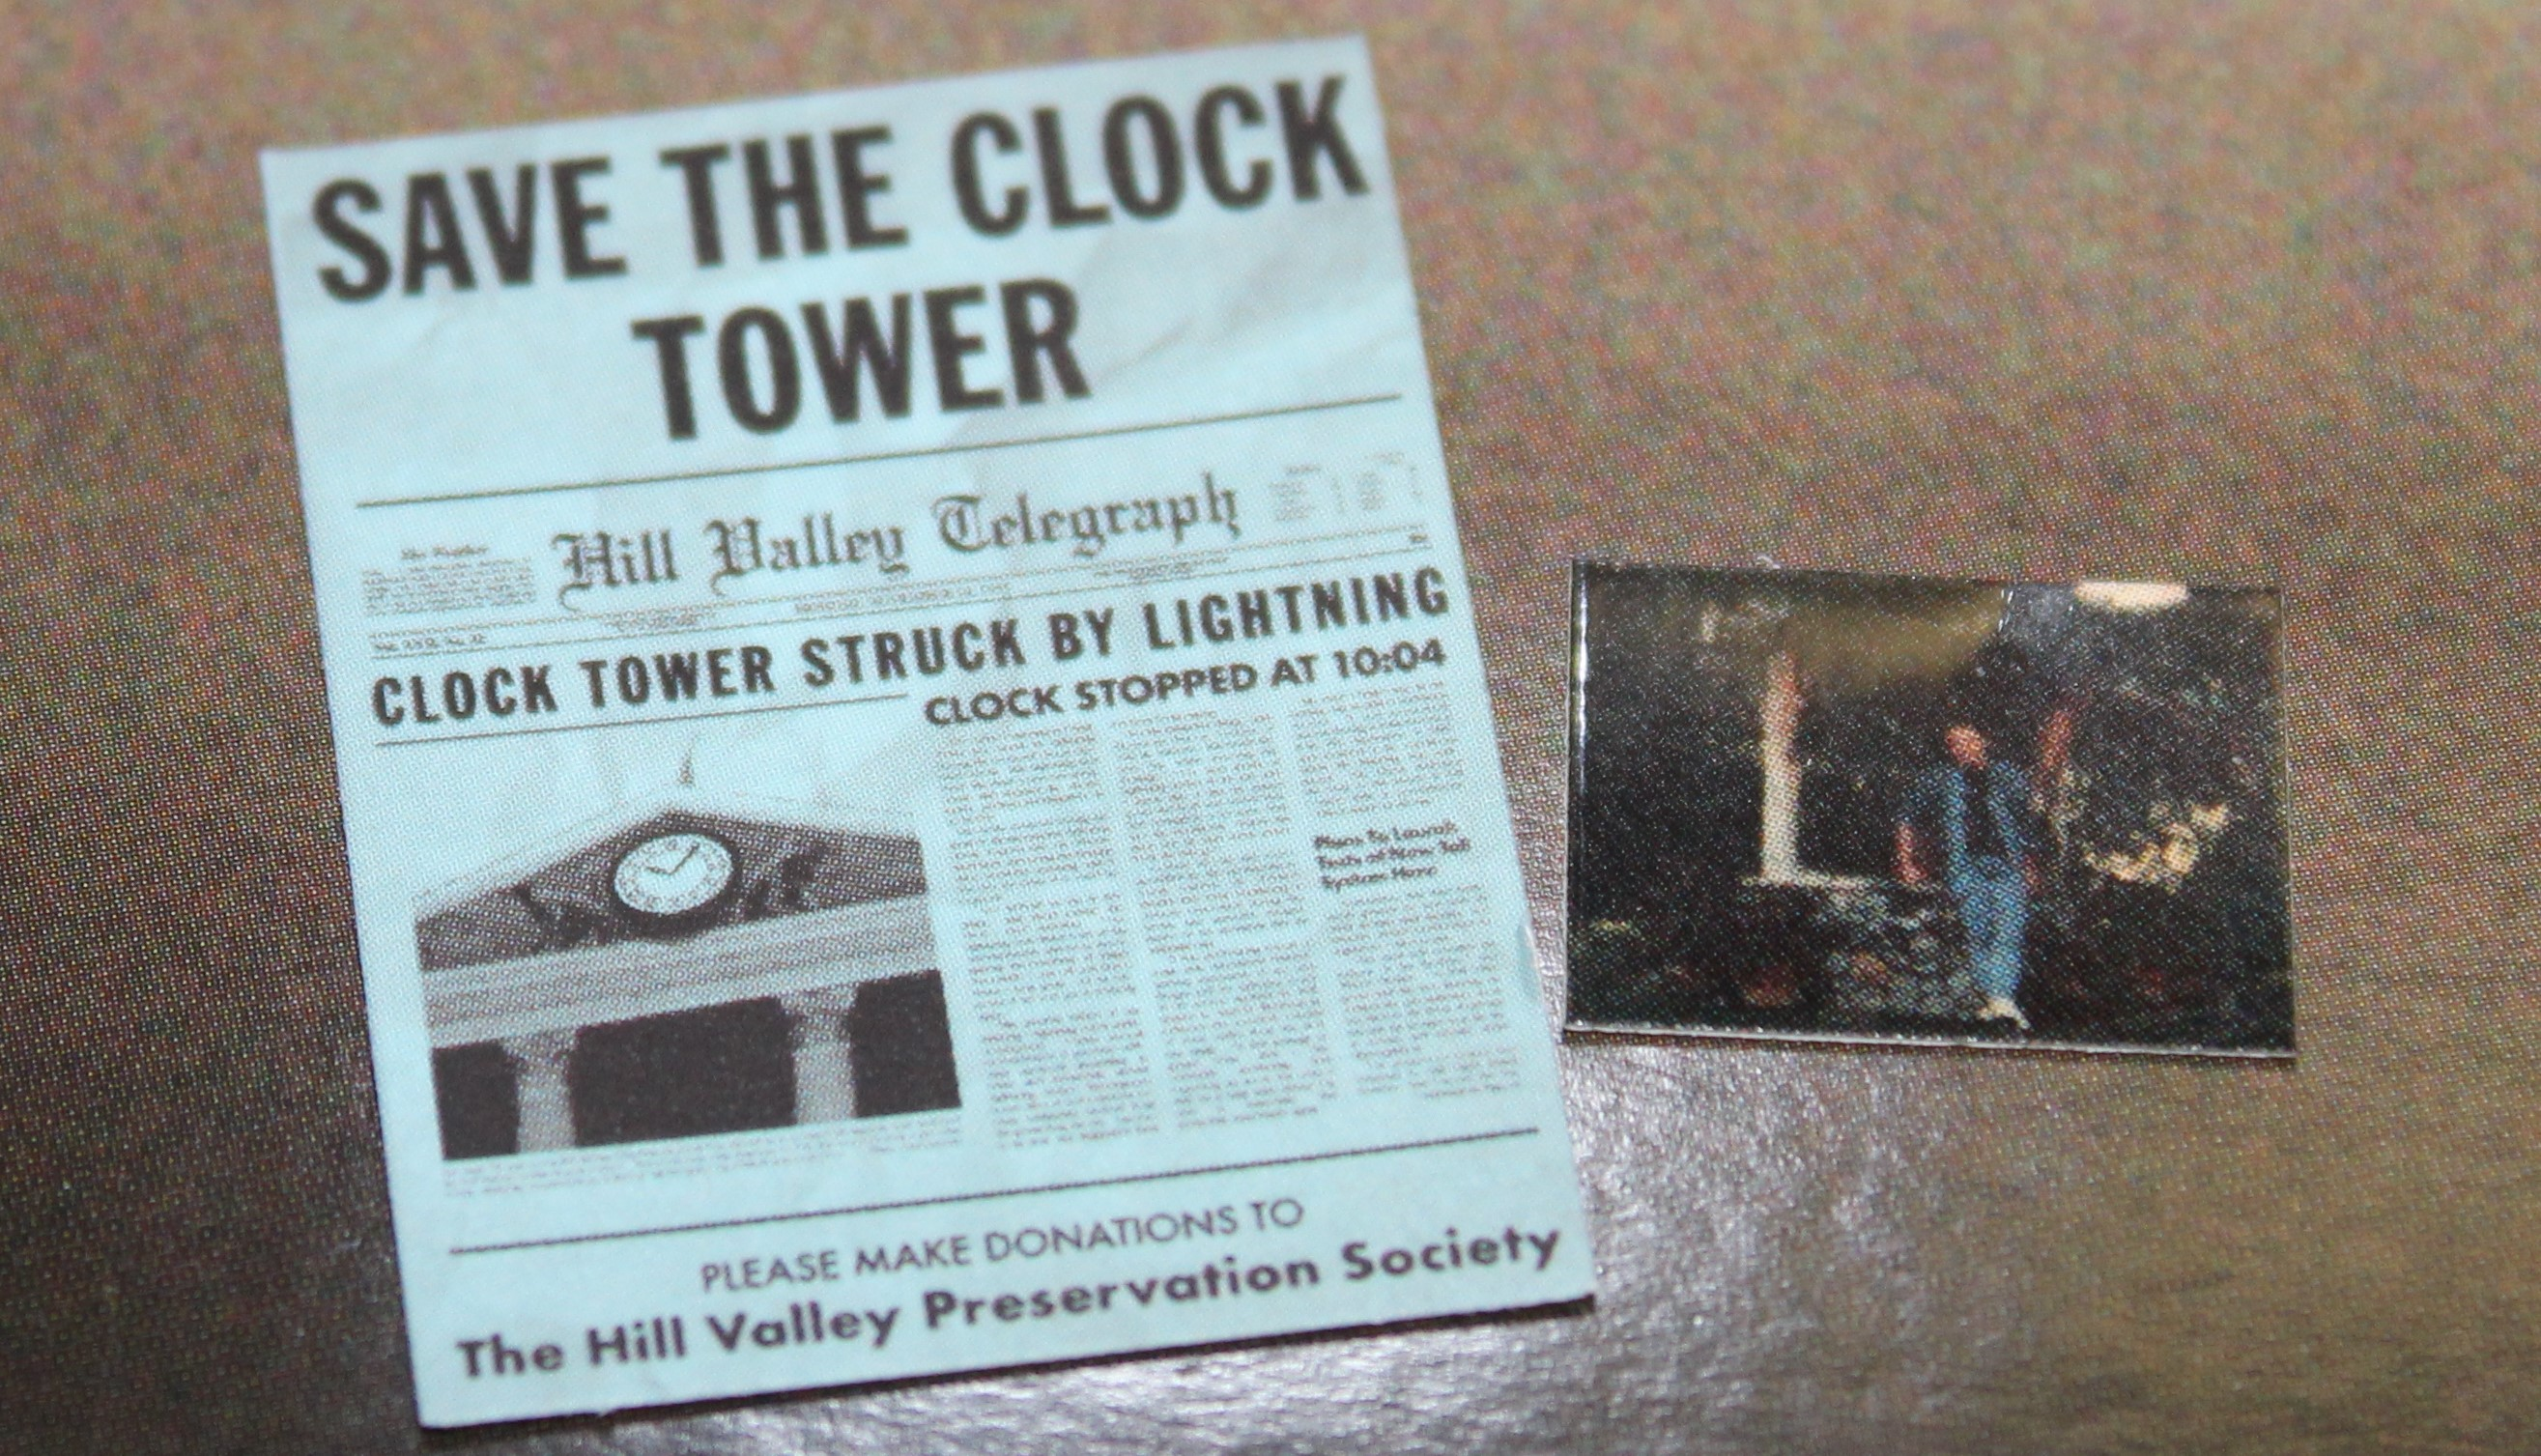 Save the clock tower!